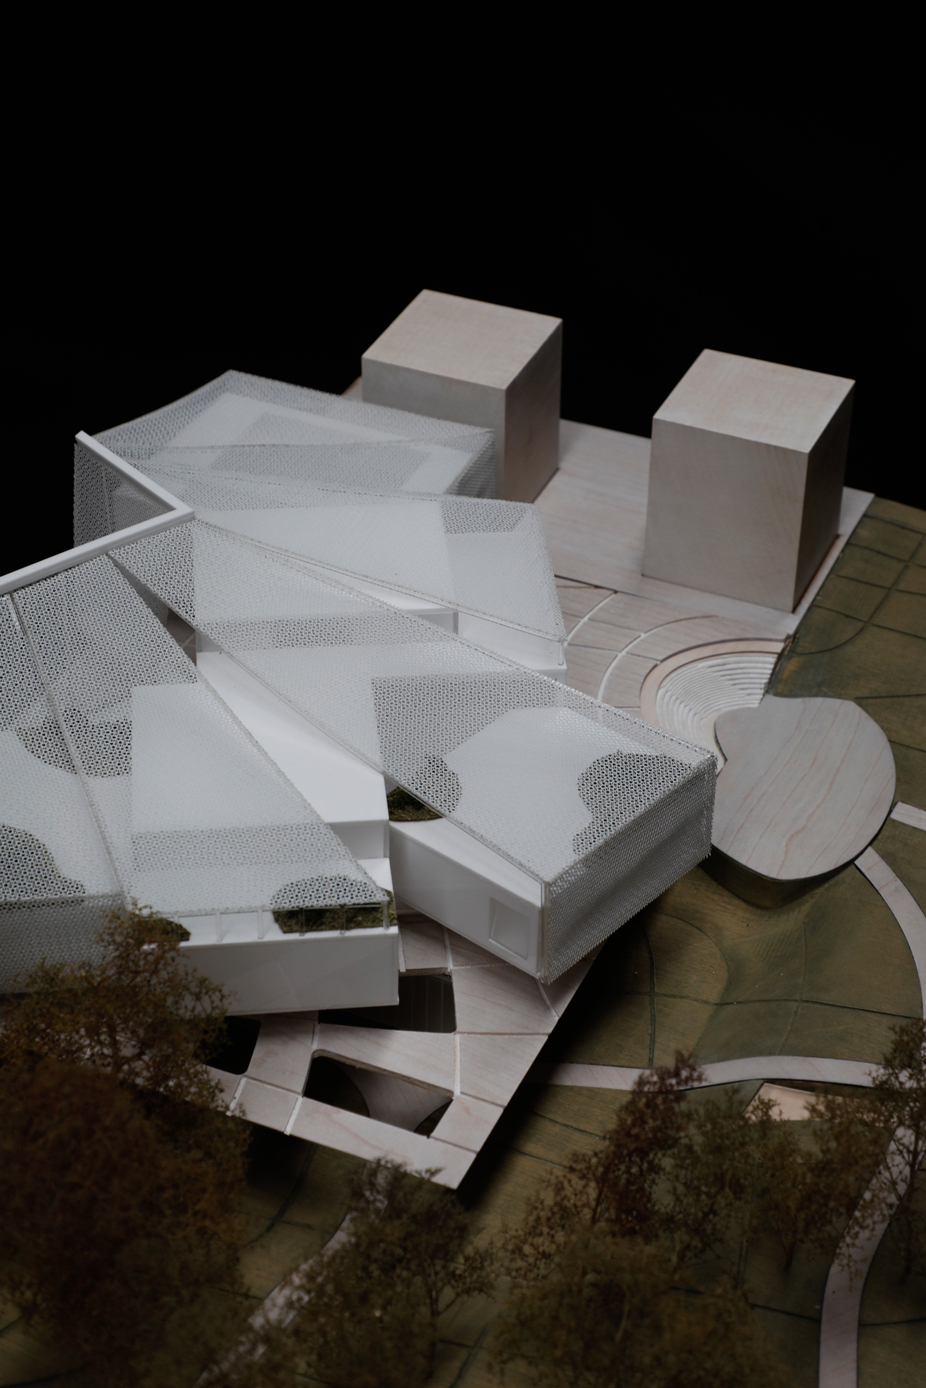 Architectural Compeition Model at 1-500 made with timber and white acrylic for HASSELL & SO-IL